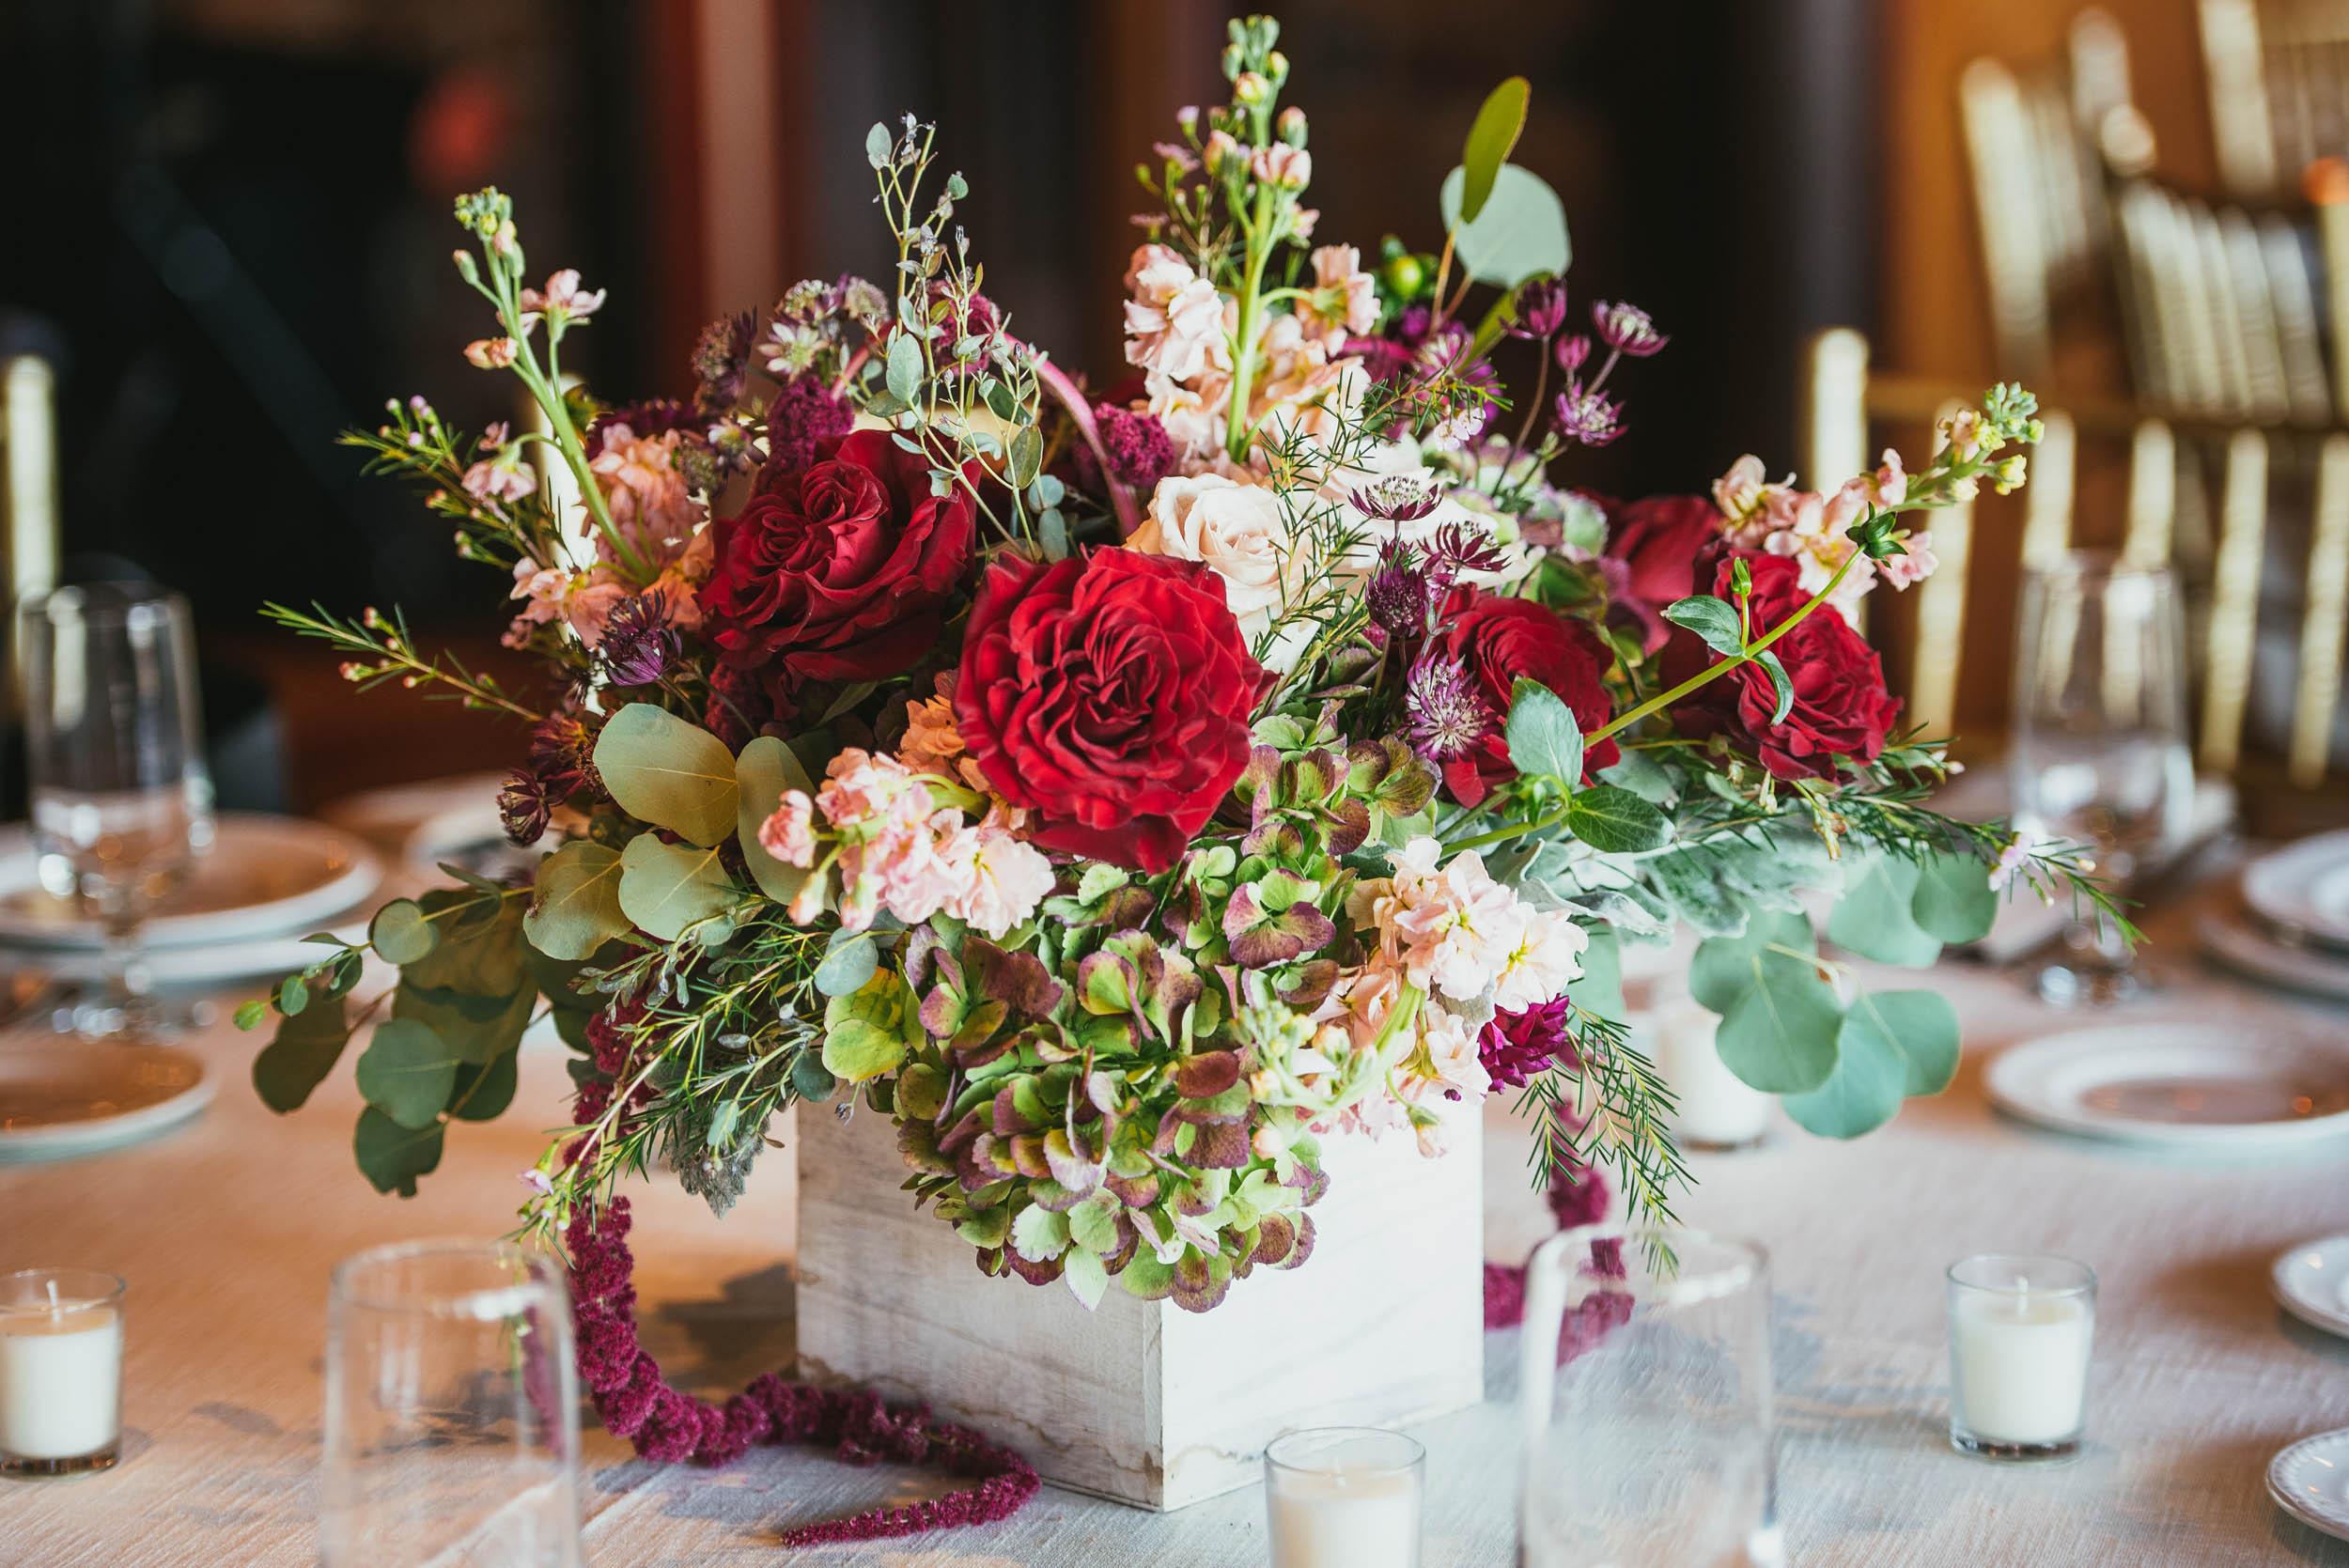 hengstenbergs-florist-kate-andrew-©in-focus-nyc-photography-06.jpg